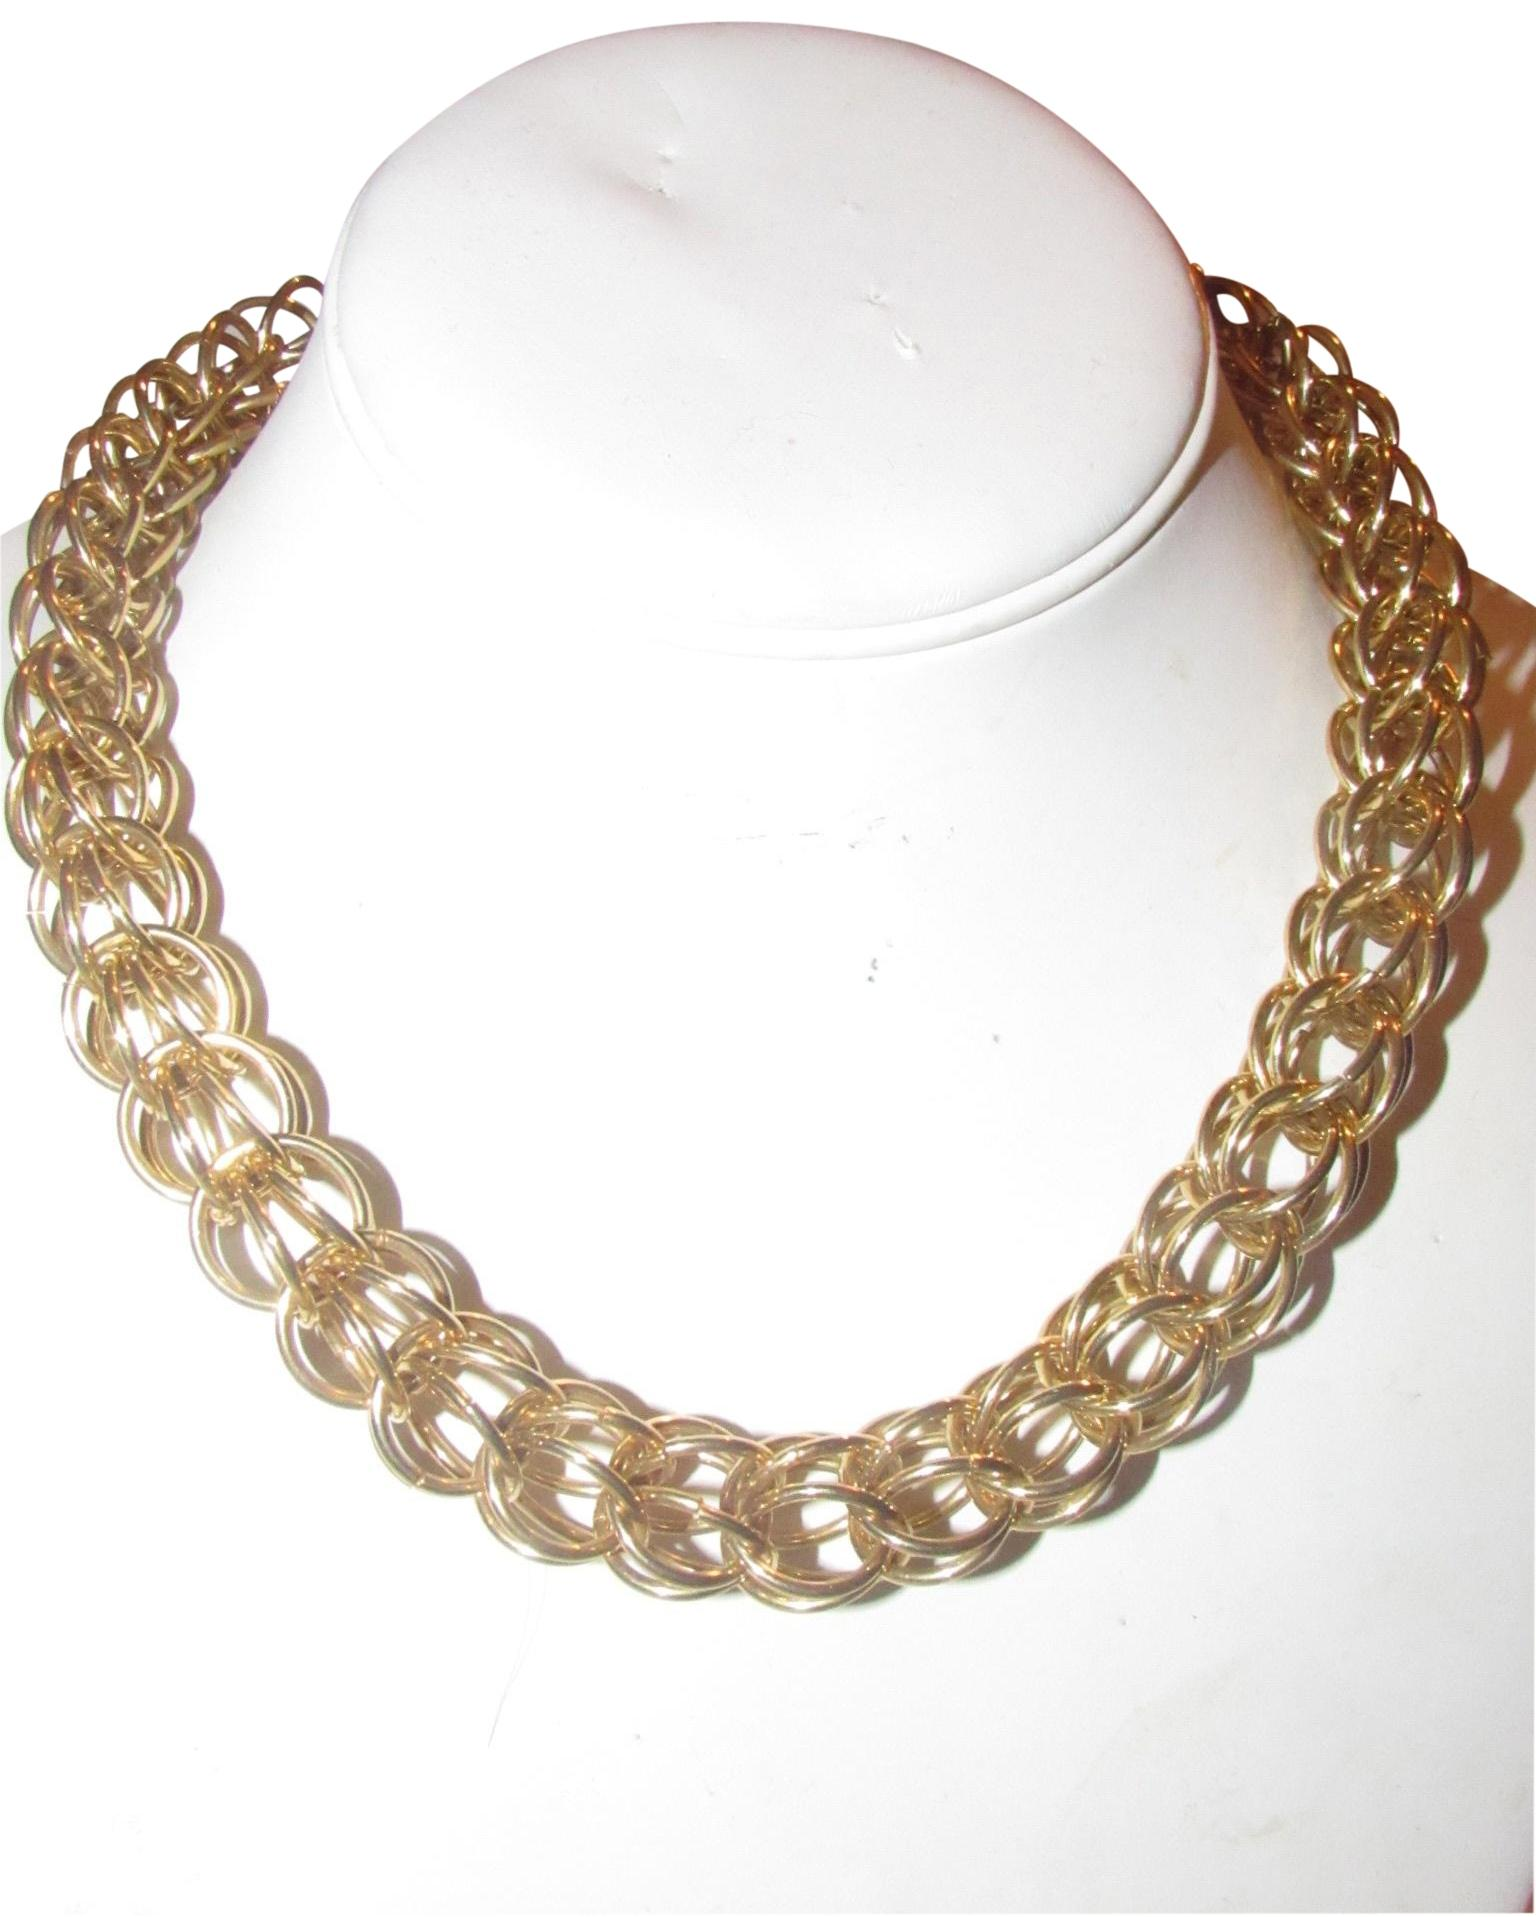 Gucci Three Dimensional Woven Round Gold Links JewelryDesigner